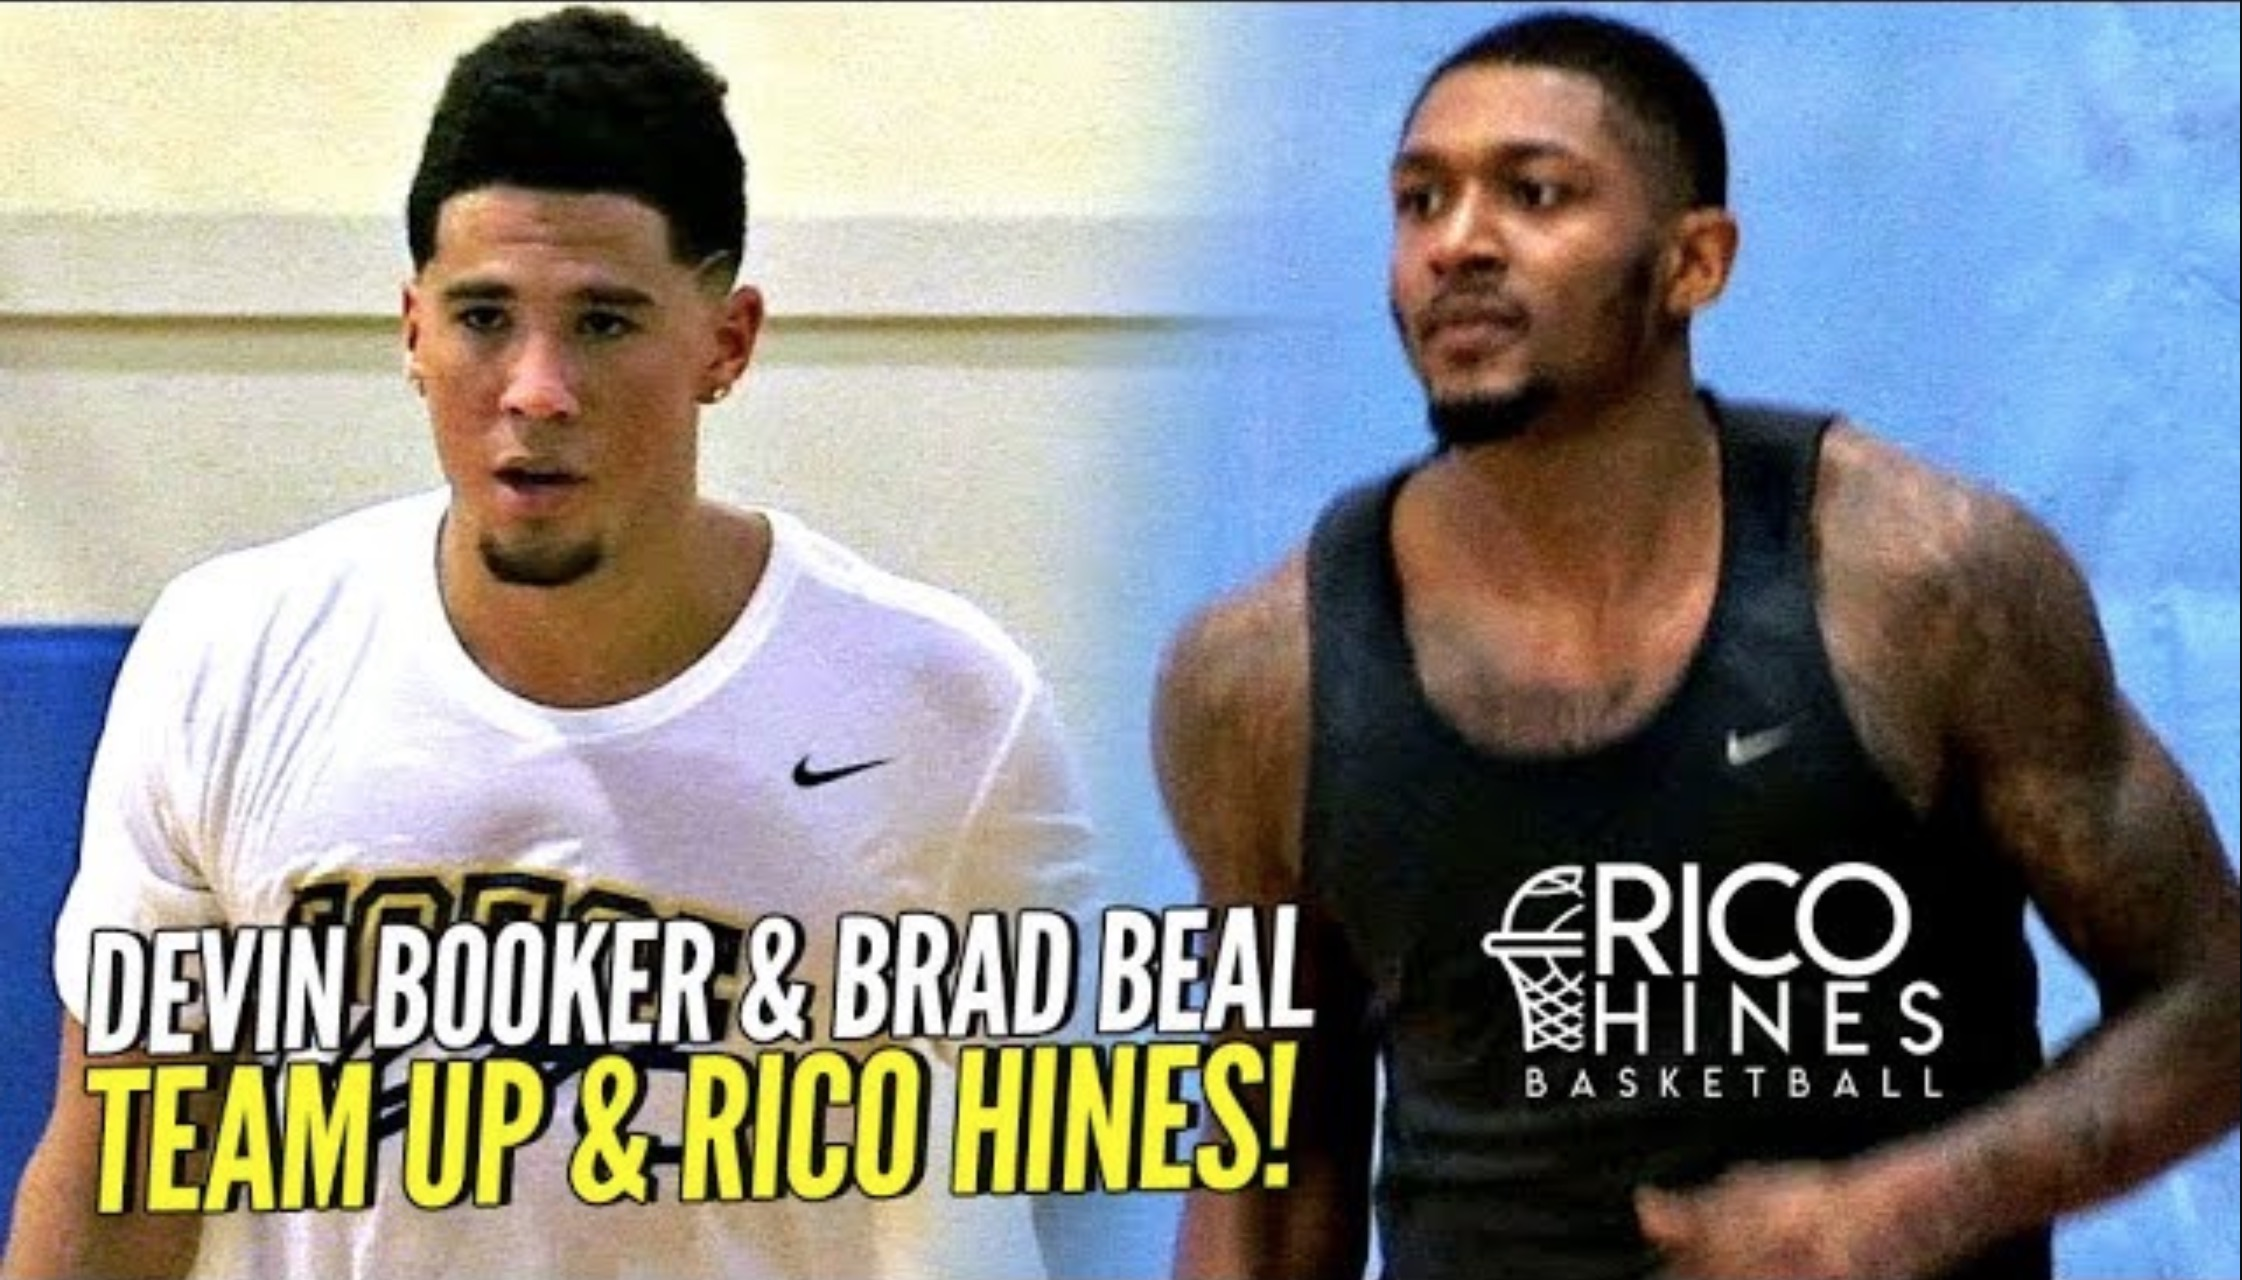 Devin Booker & Bradley Beal Rico Hines Workout